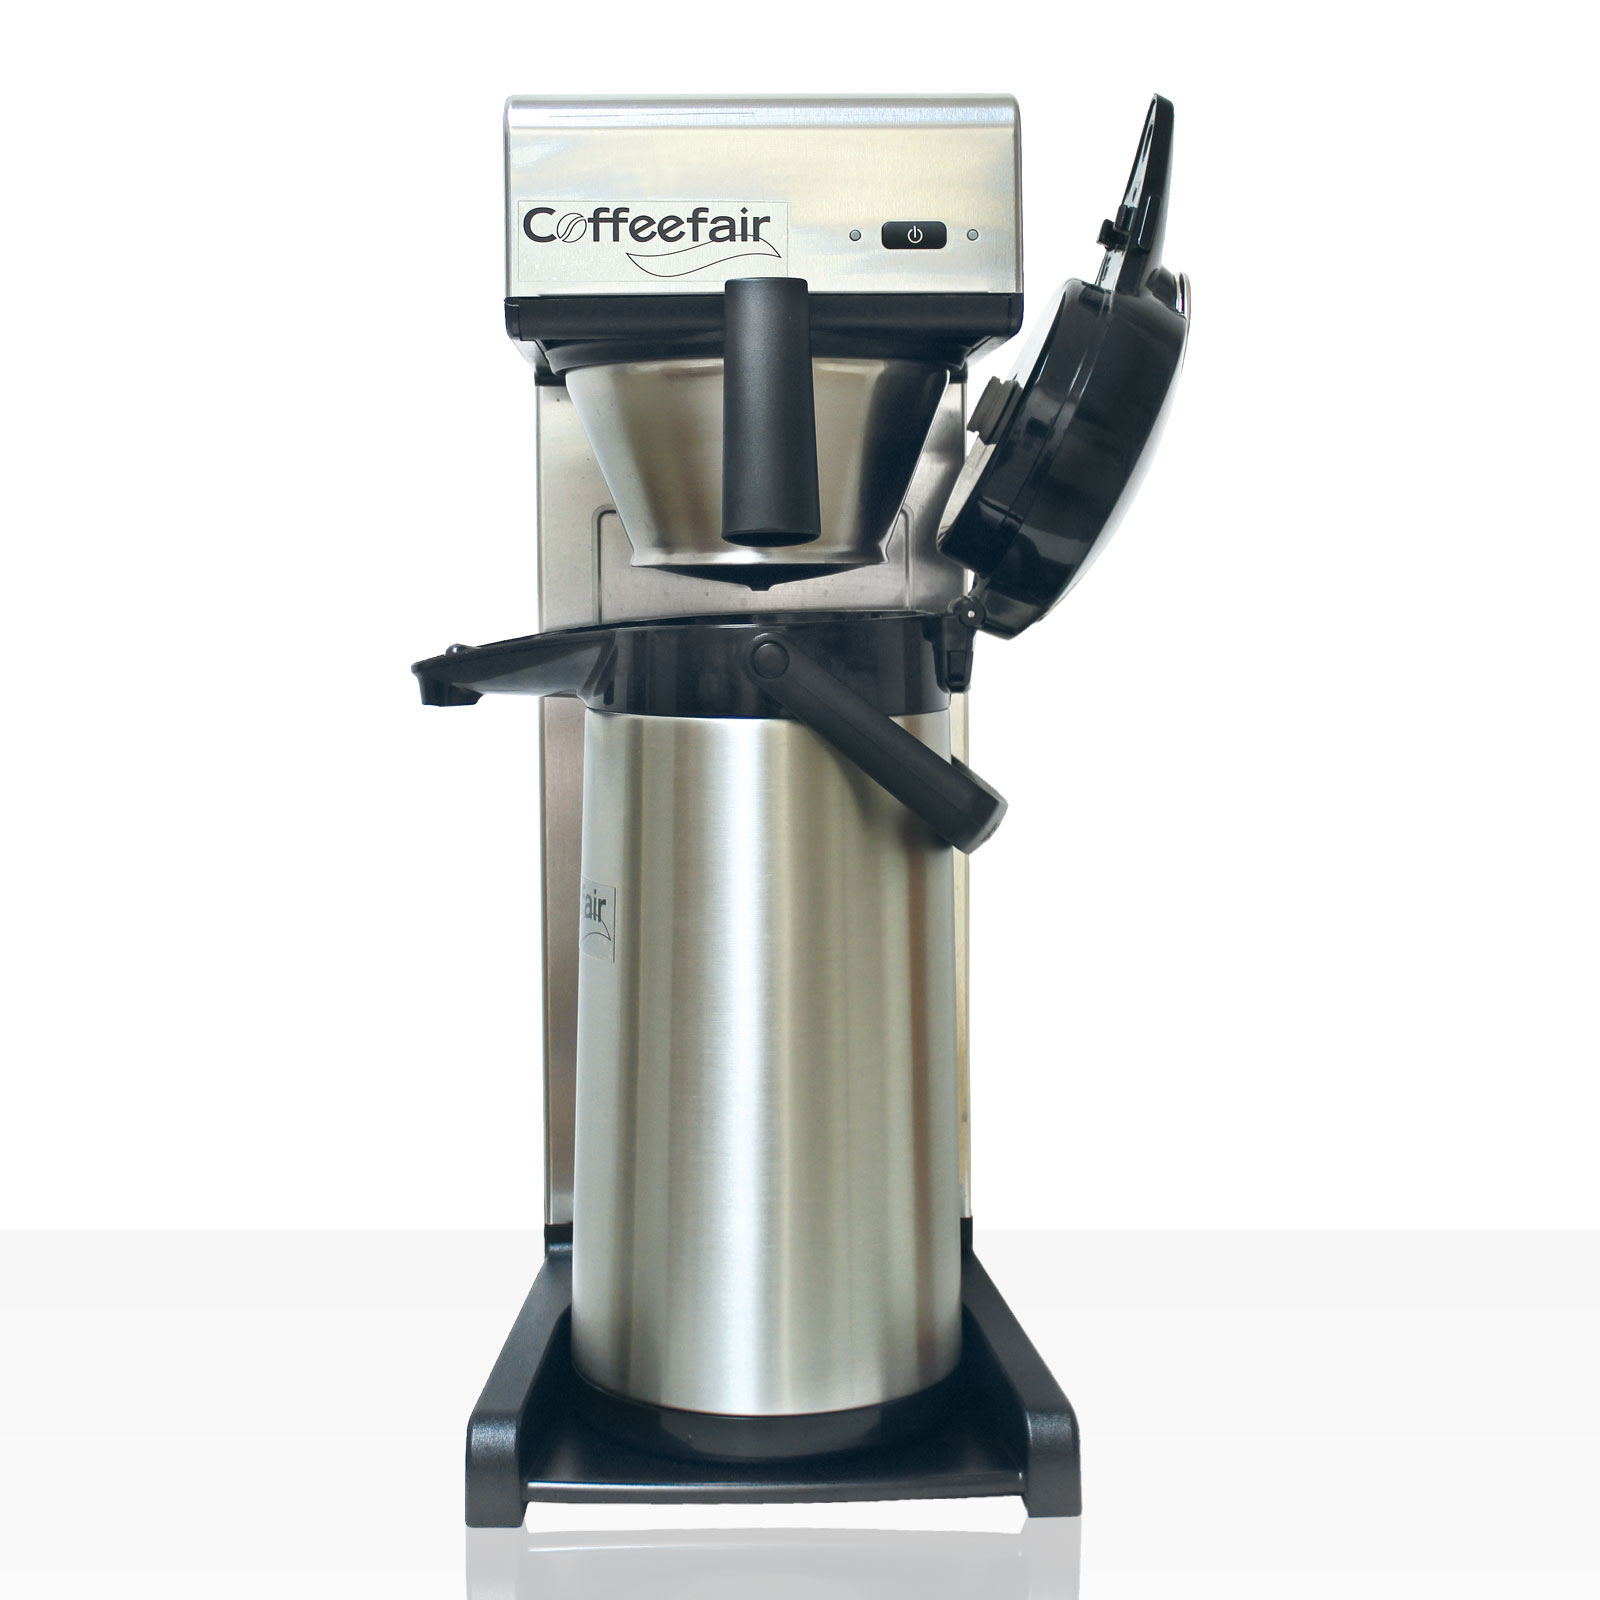 Bonamat TH10 Kaffeemaschine Coffeefair inkl. Kanne mit Glaseinsatz (neues Design)